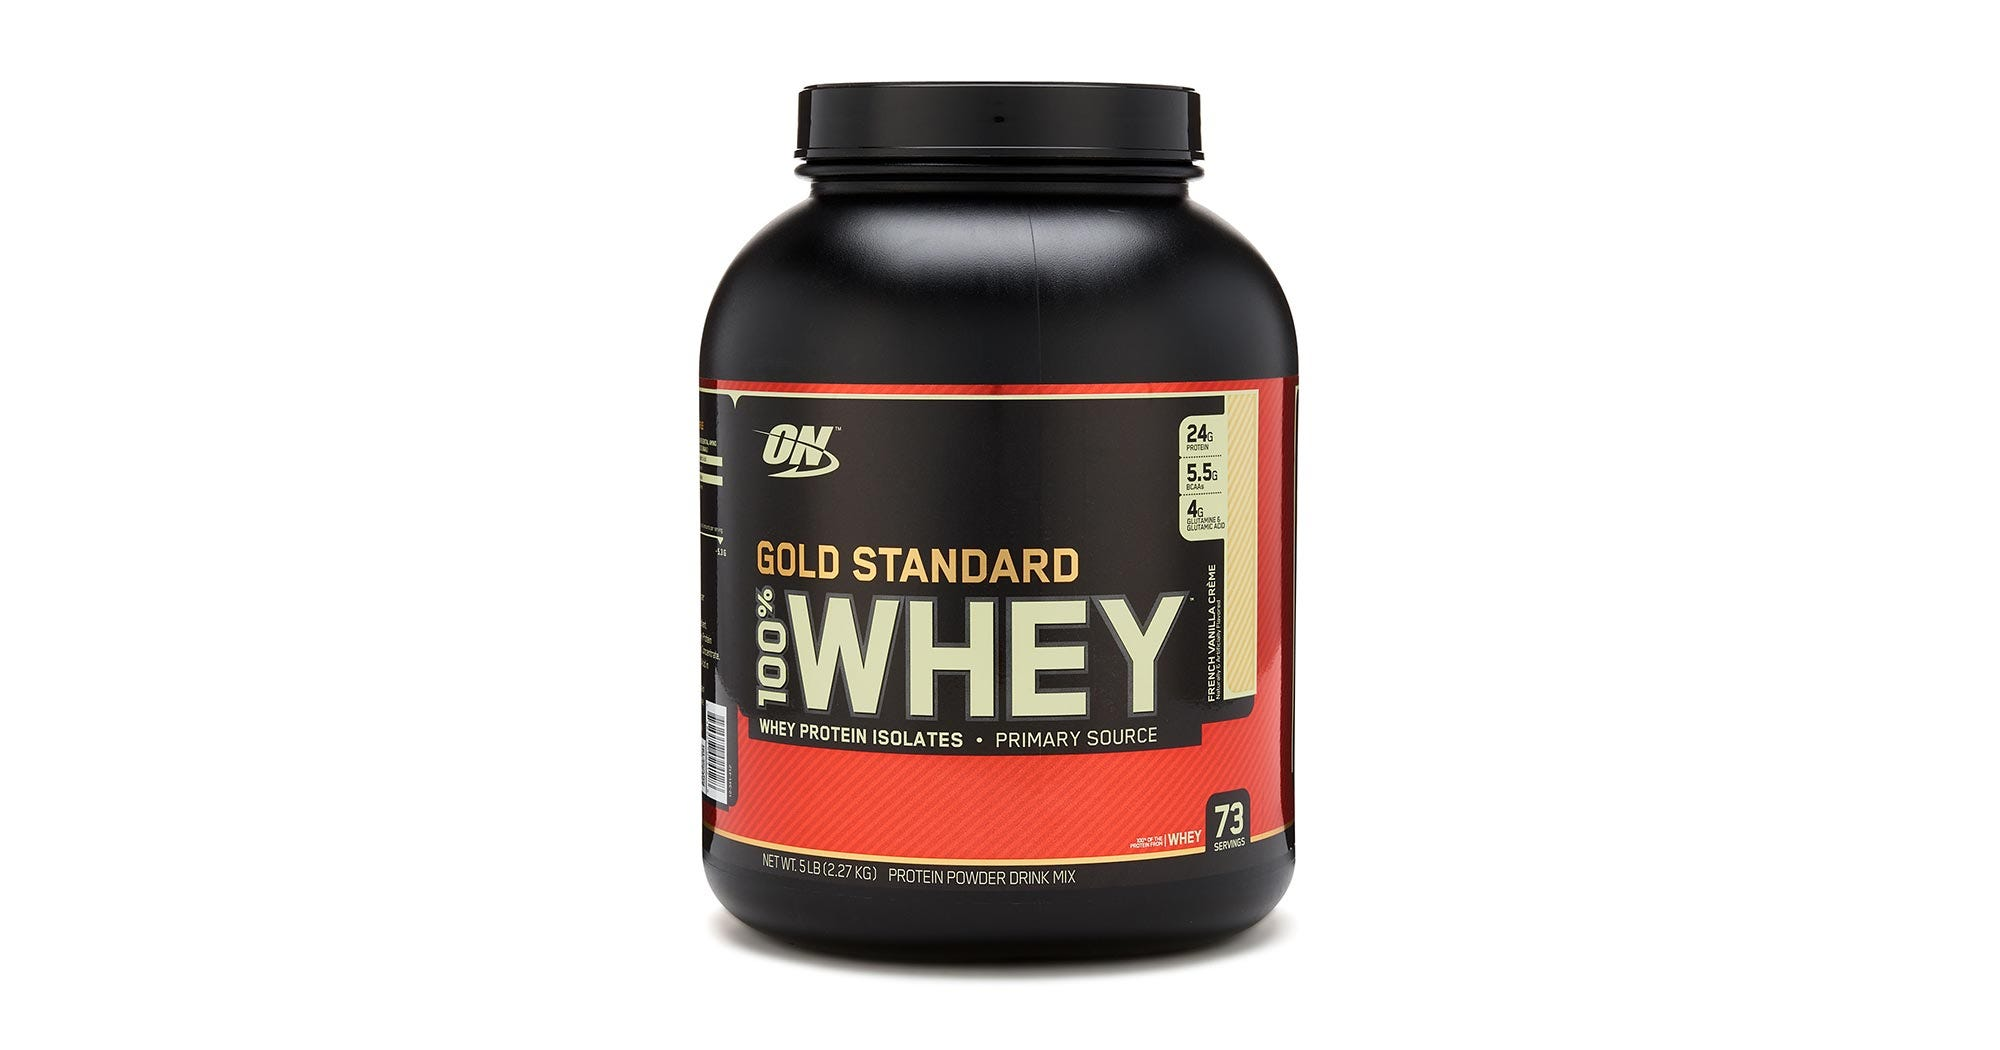 Whey Protein Side Effects Vs Plant Protein, Ingredients